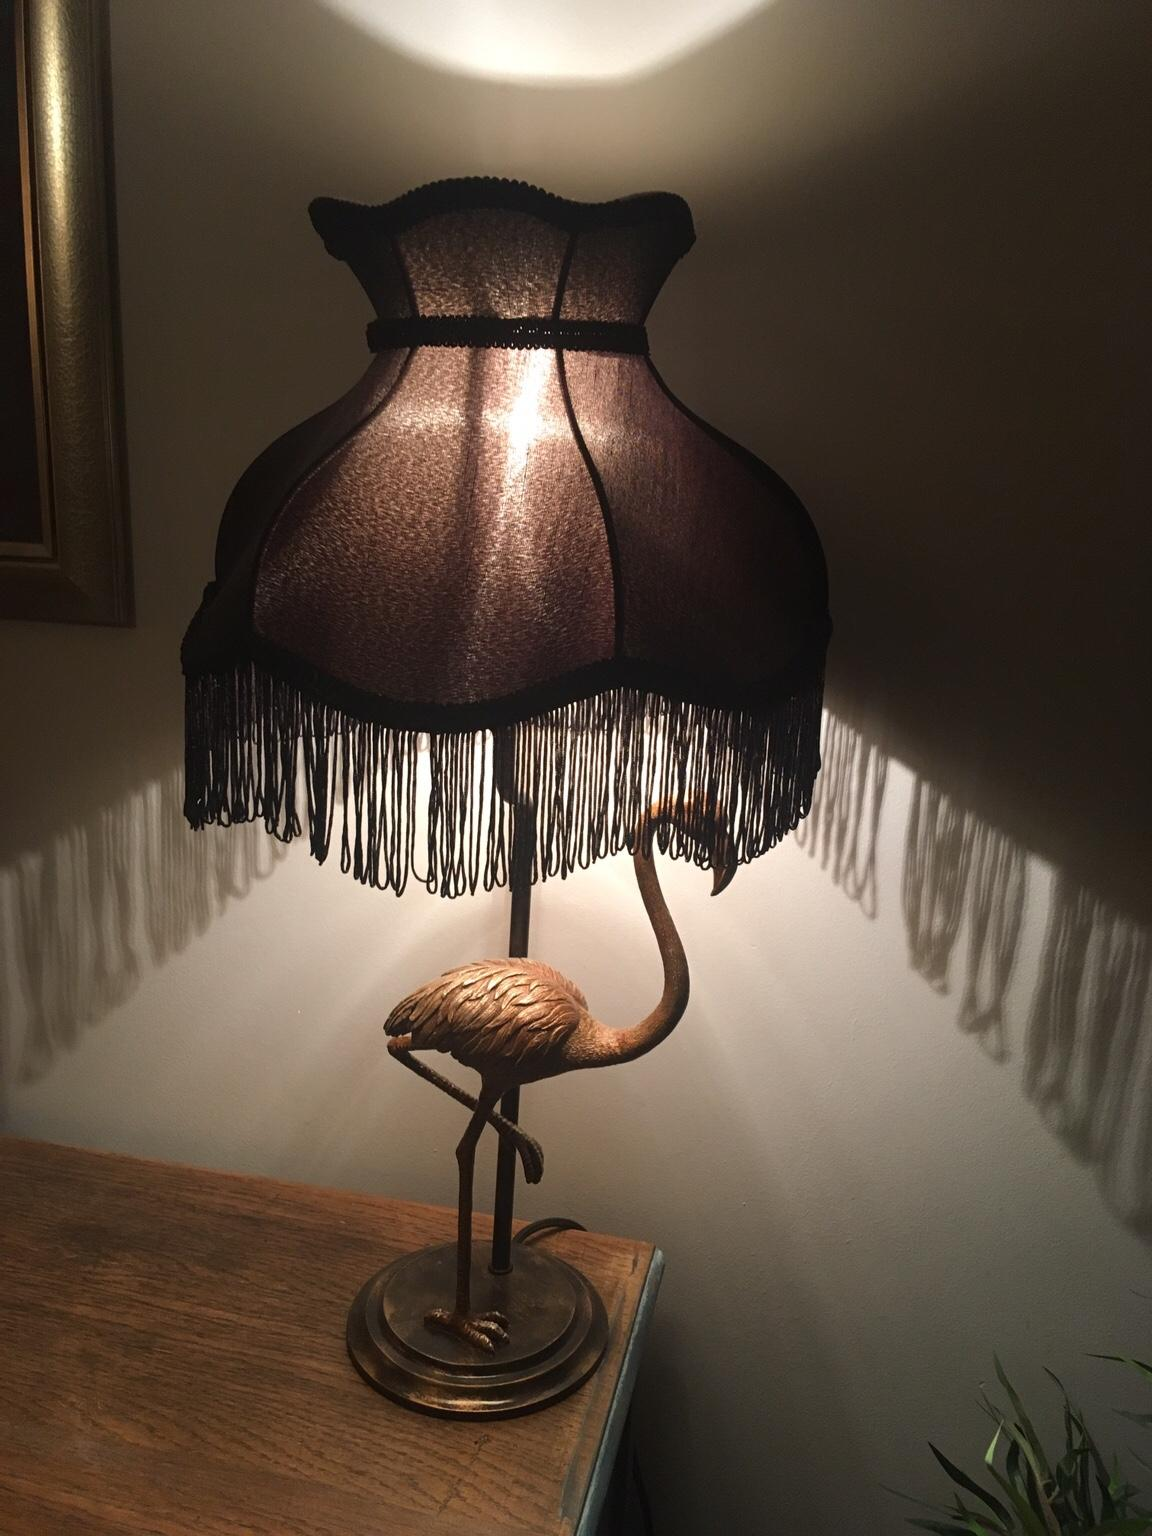 Picture of: Dunelm Flamingo Table Lamp Brass And Black In South Derbyshire For 30 00 For Sale Shpock